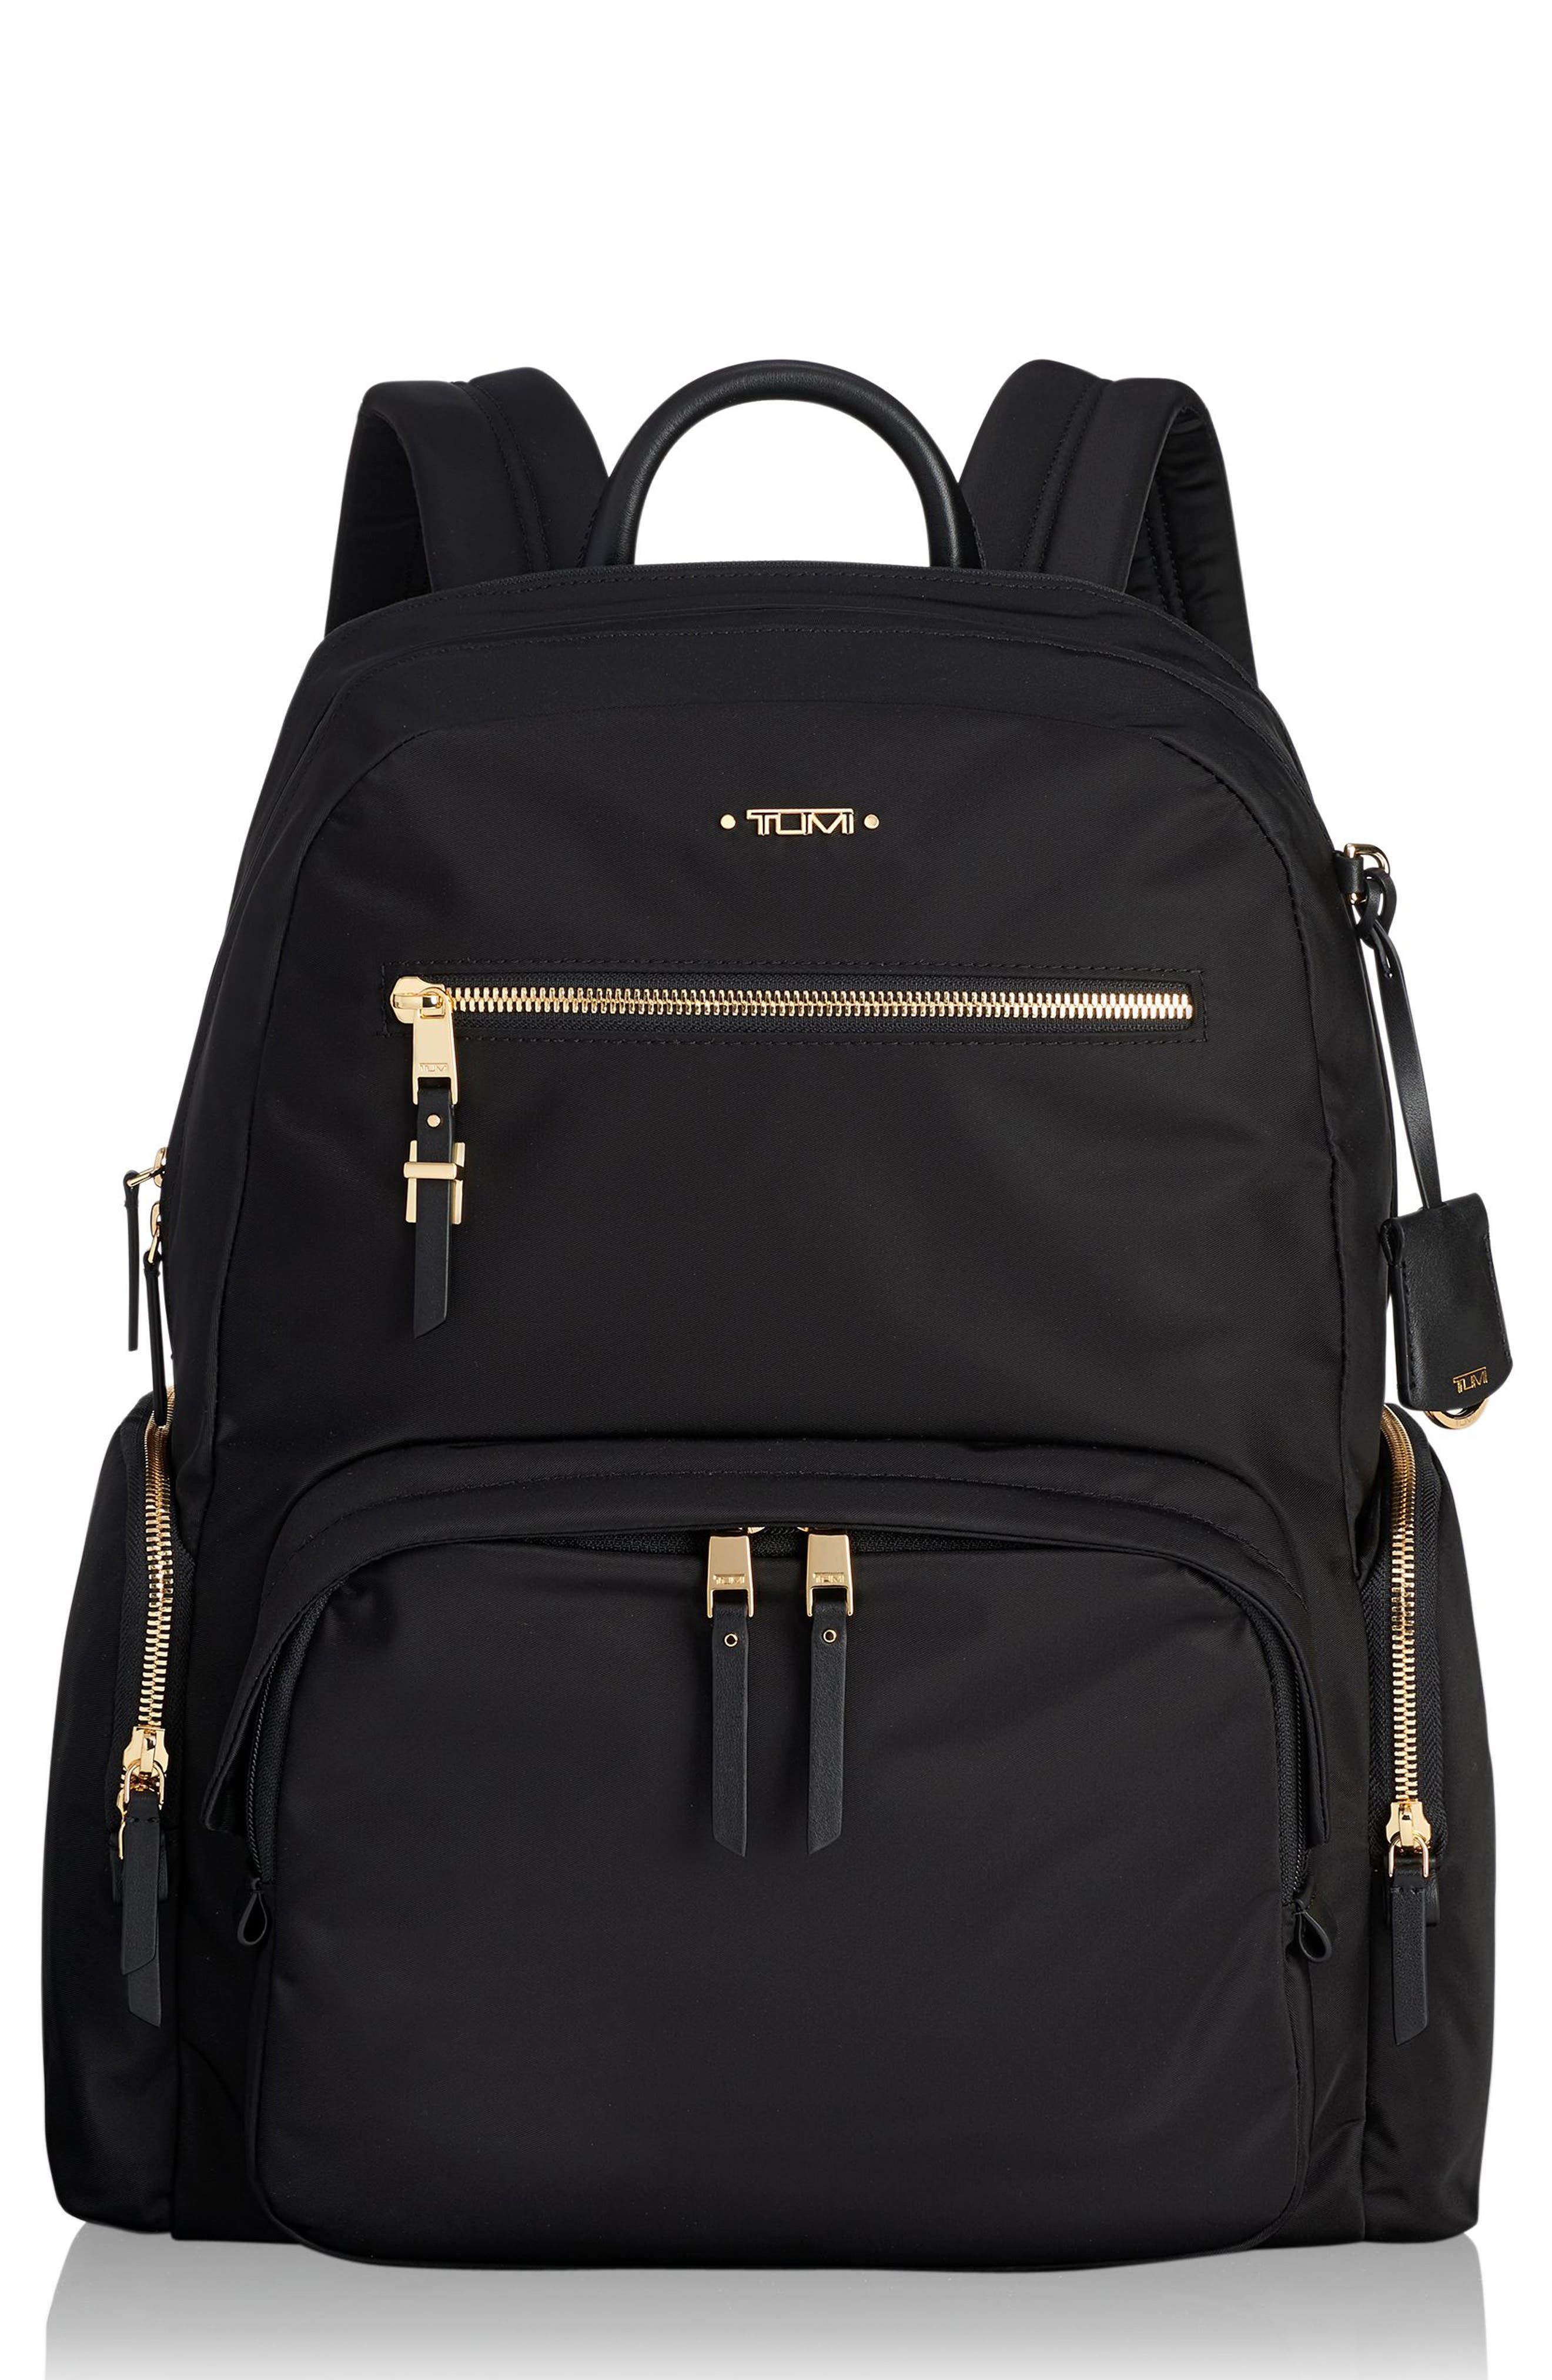 Voyager Carson Nylon Backpack - Beige in Mink